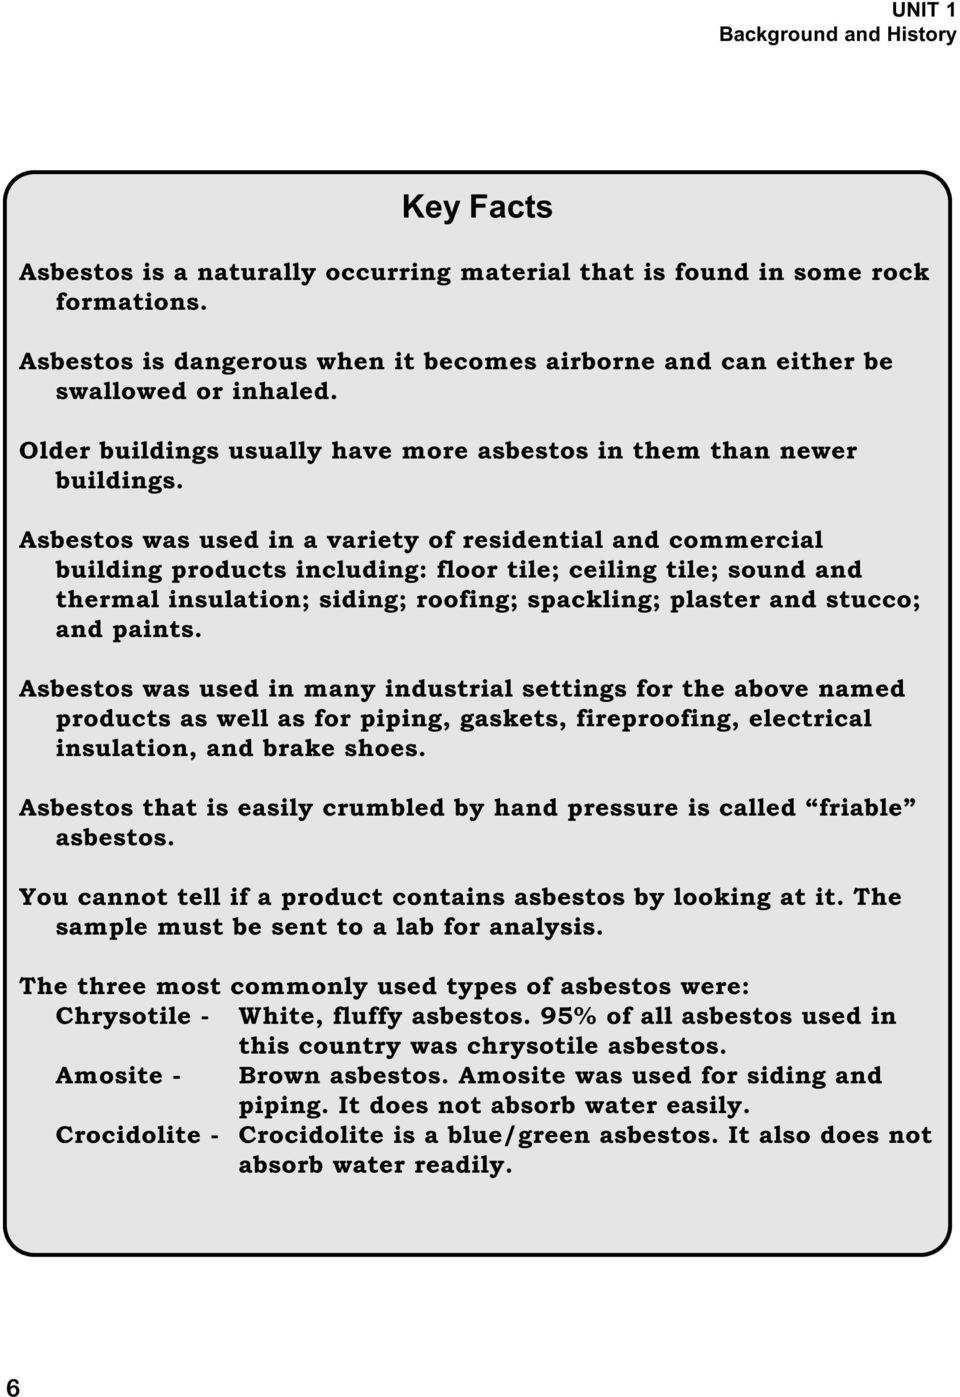 Asbestos was used in a variety of residential and commercial building products including: floor tile; ceiling tile; sound and thermal insulation; siding; roofing; spackling; plaster and stucco; and